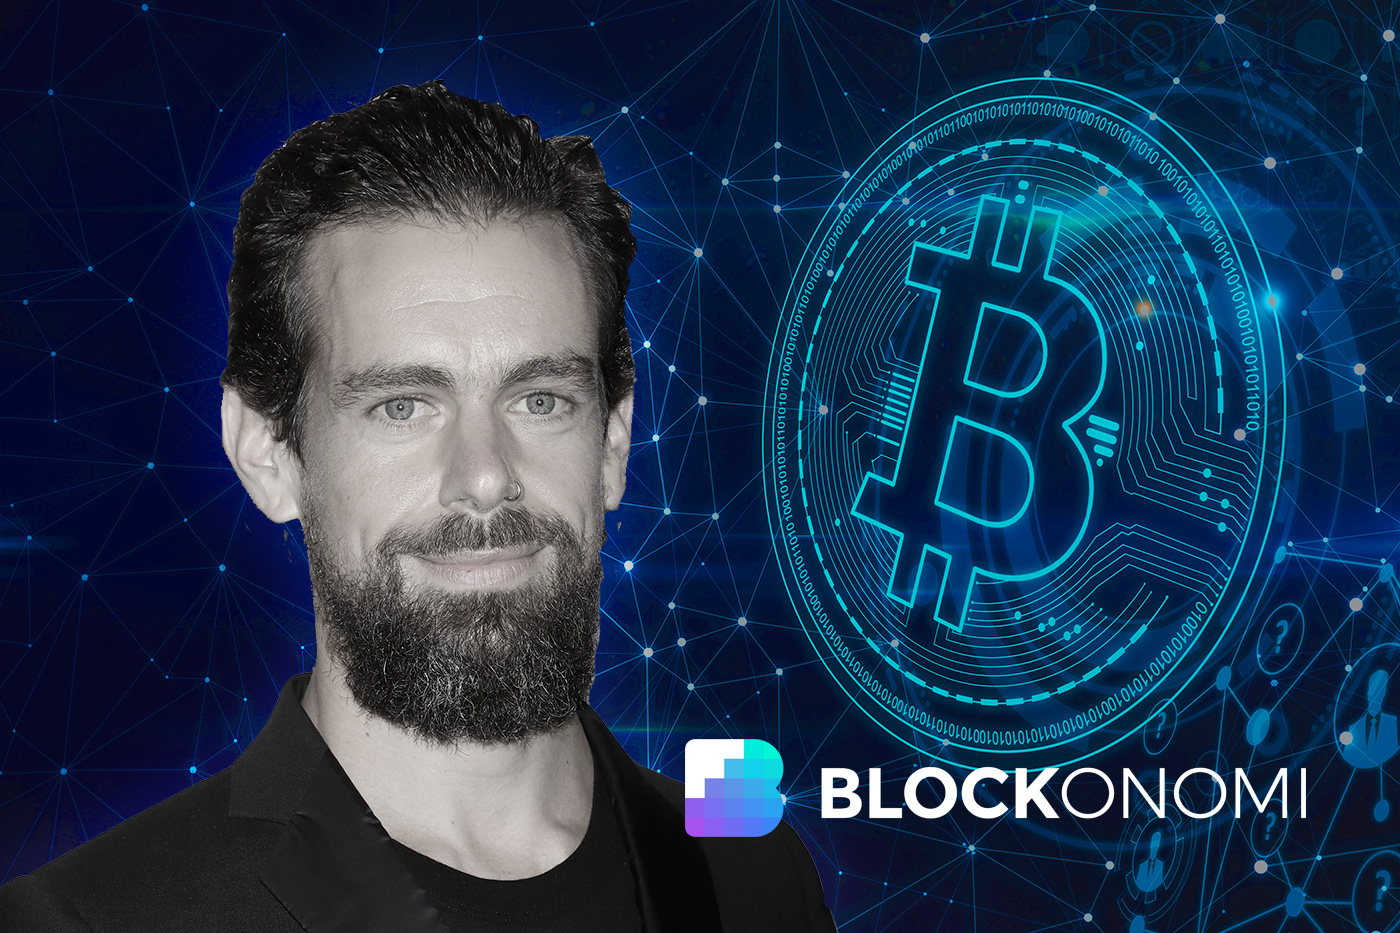 Jack Dorsey Doubles Down on Bitcoin With $170 Million Investment